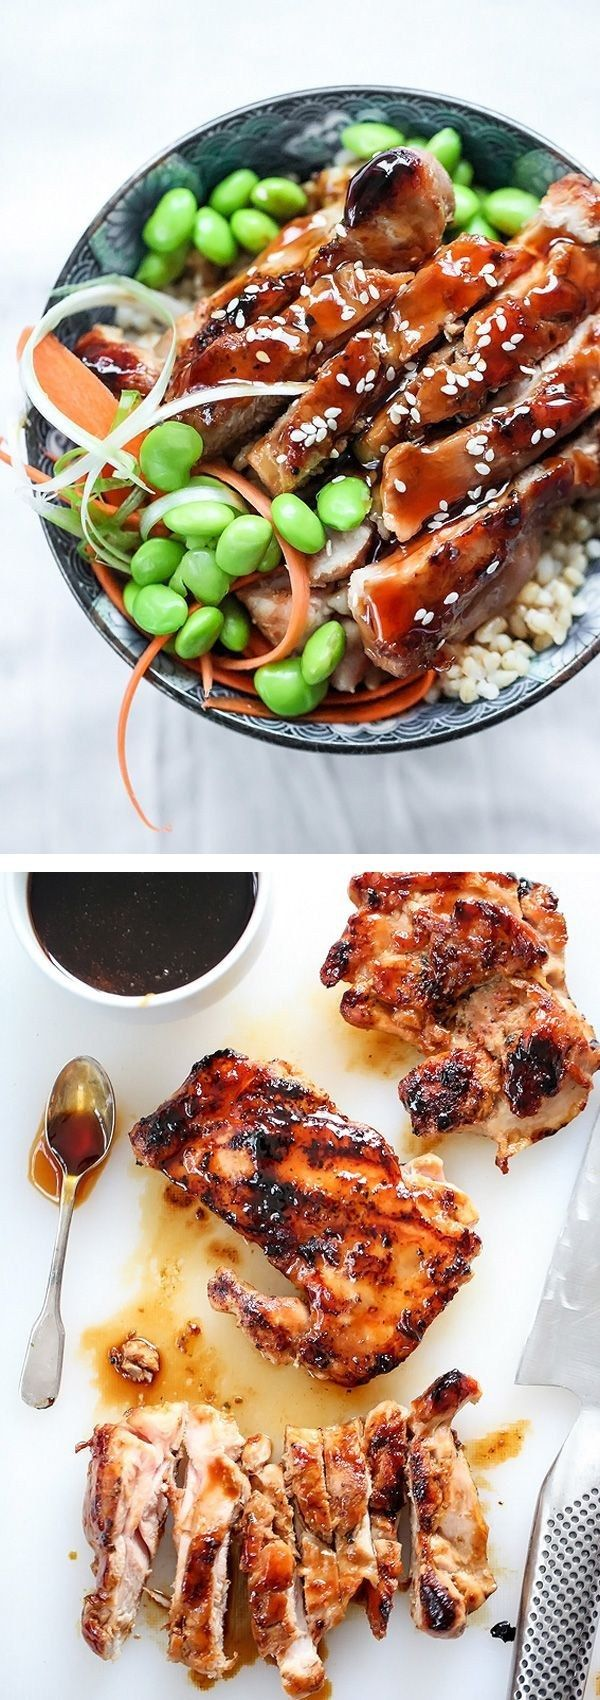 7-Spice Teriyaki Chicken Rice Bowls   24 Healthy Rice Bowls You Should Eat For Dinner